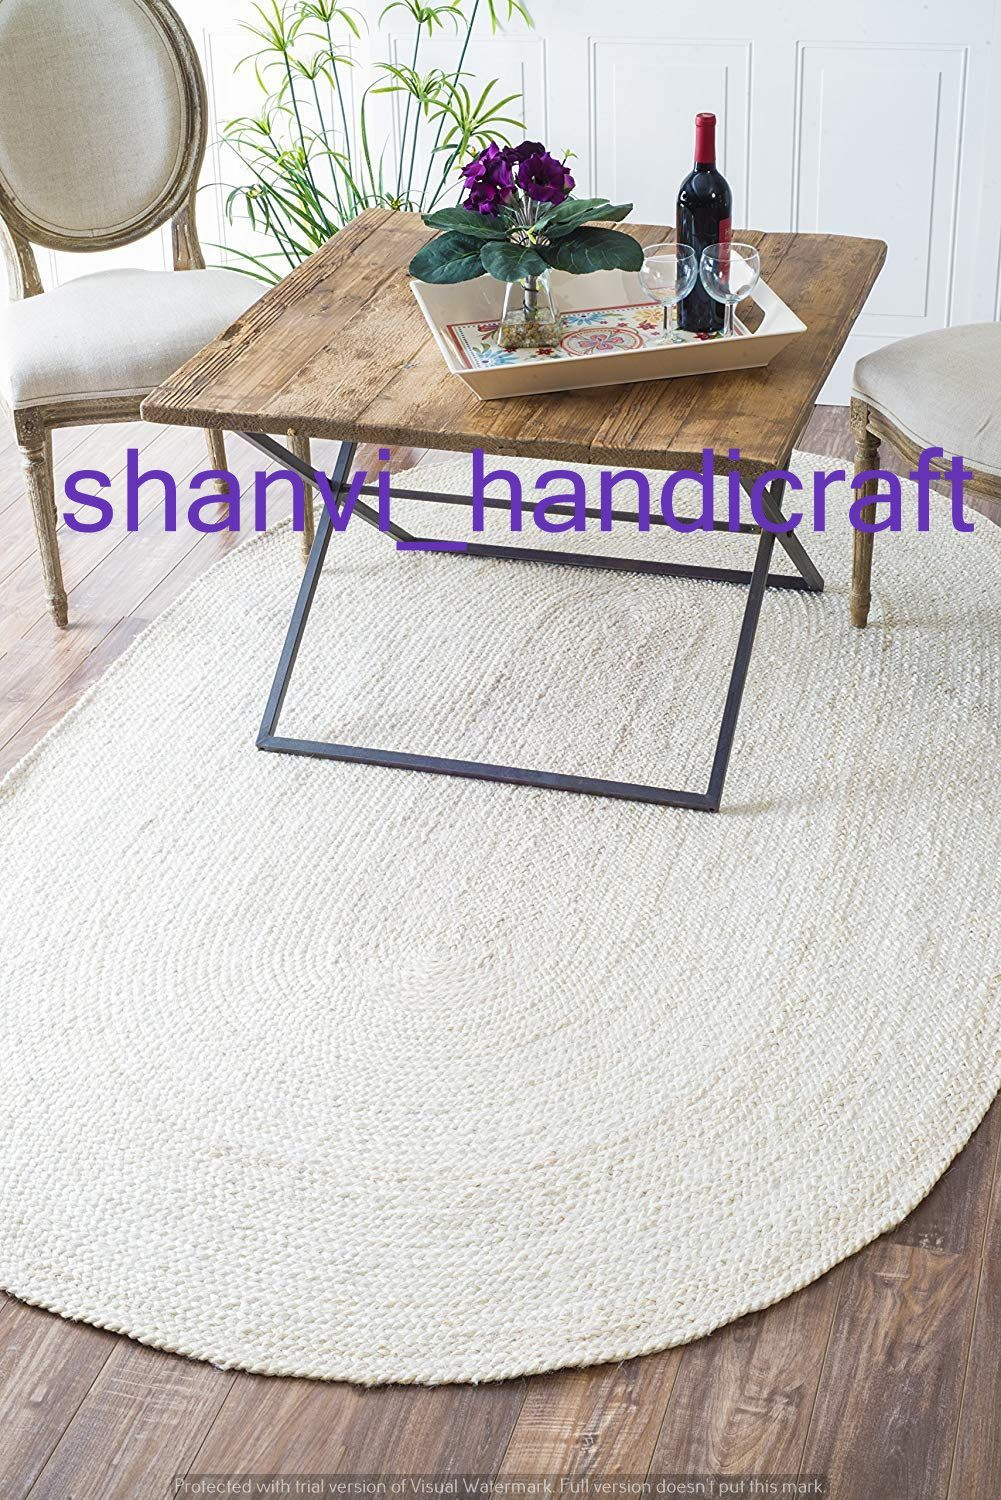 Indian Hand Braided Bohemian White Chindi Cotton Area Rug Oval Shape Mat Durri Custom size available Home Decorative Jute Rug Rags Carpet ,  #Area #Bohemian #Braided #braidedRugsoval #carpet #Chindi #Cotton #Custom #Decorative #Durri #Hand #Home #Indian #Jute #mat #Oval #rags #Rug #Shape #Size #White